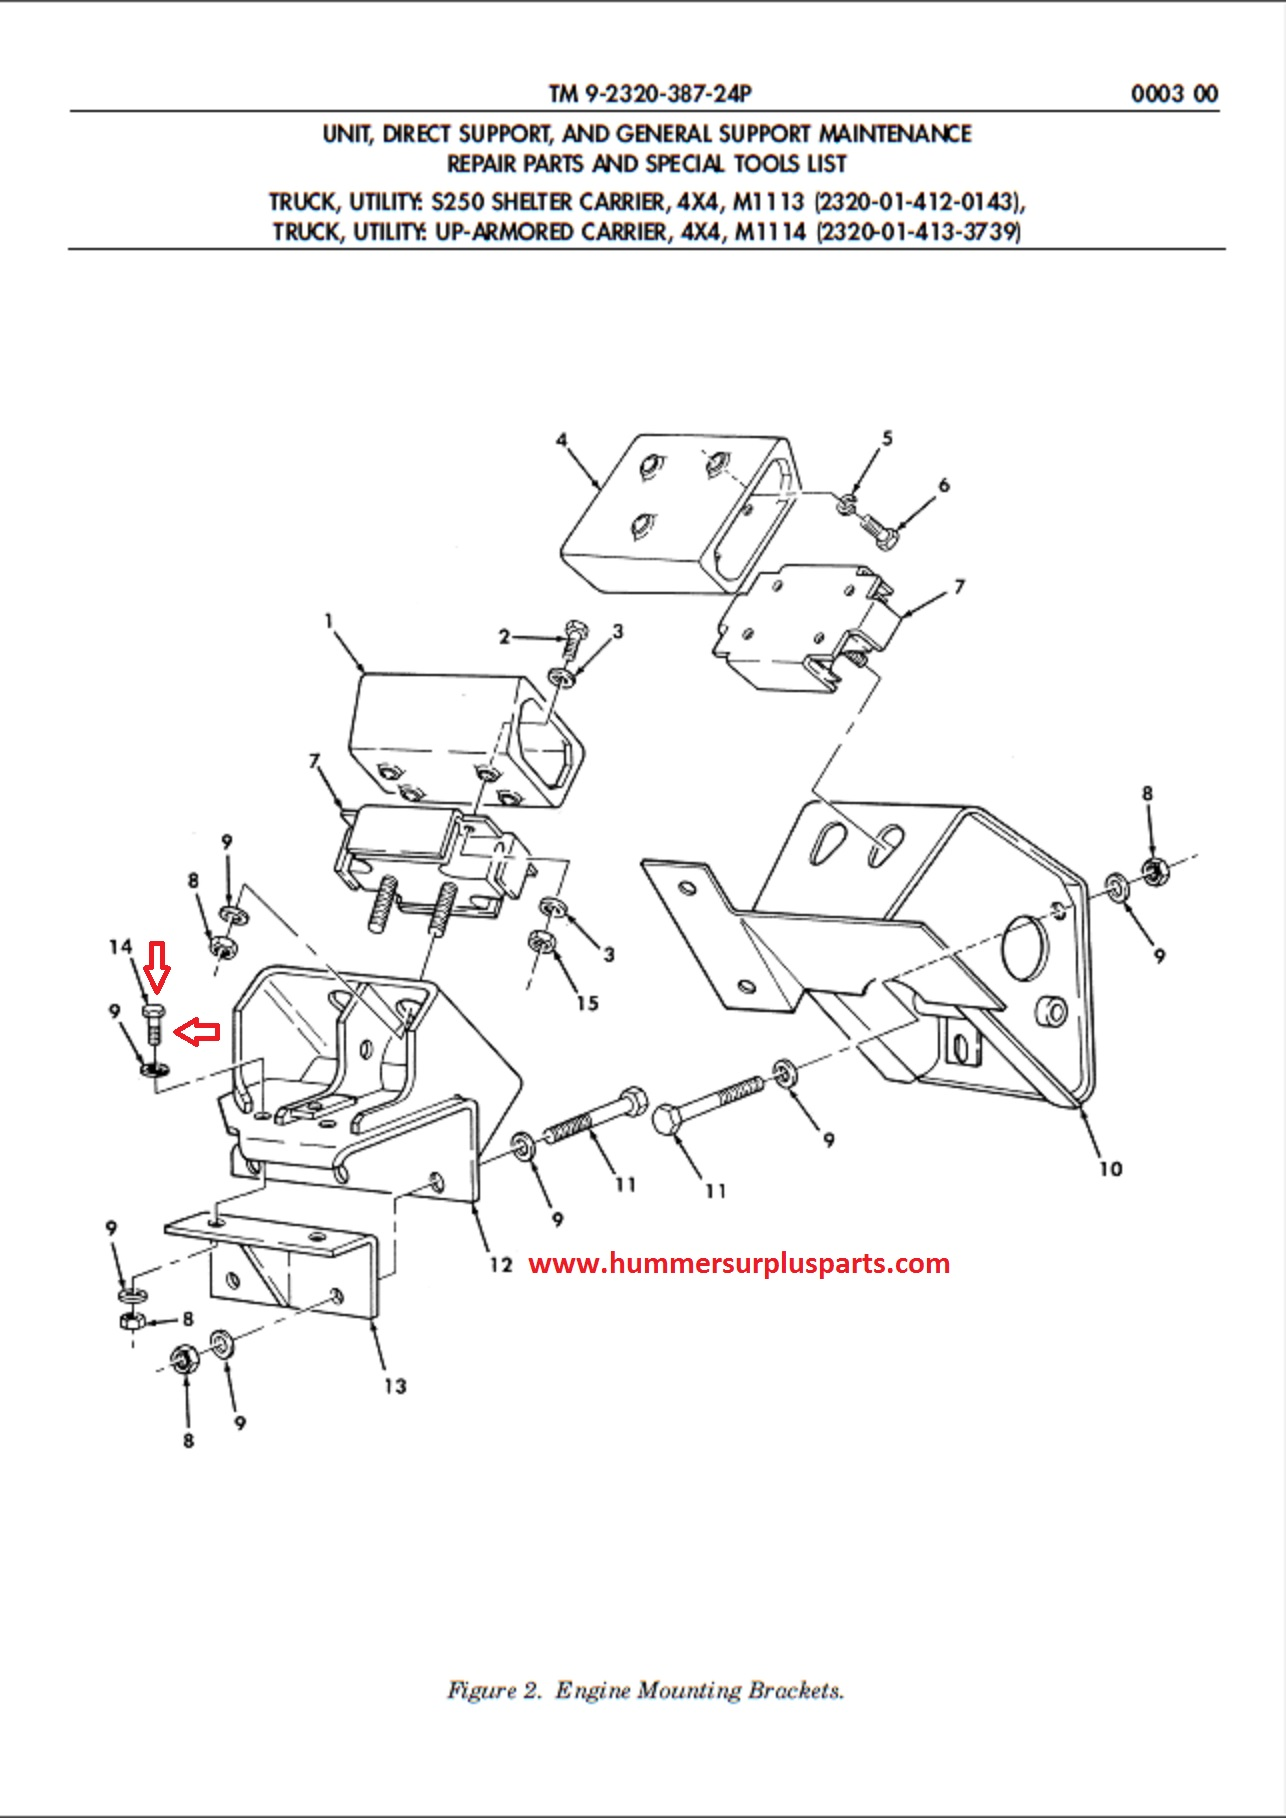 hmmwv wiring diagram 05 chrysler town and country fuse box diagram ipod 3 wiring diagram